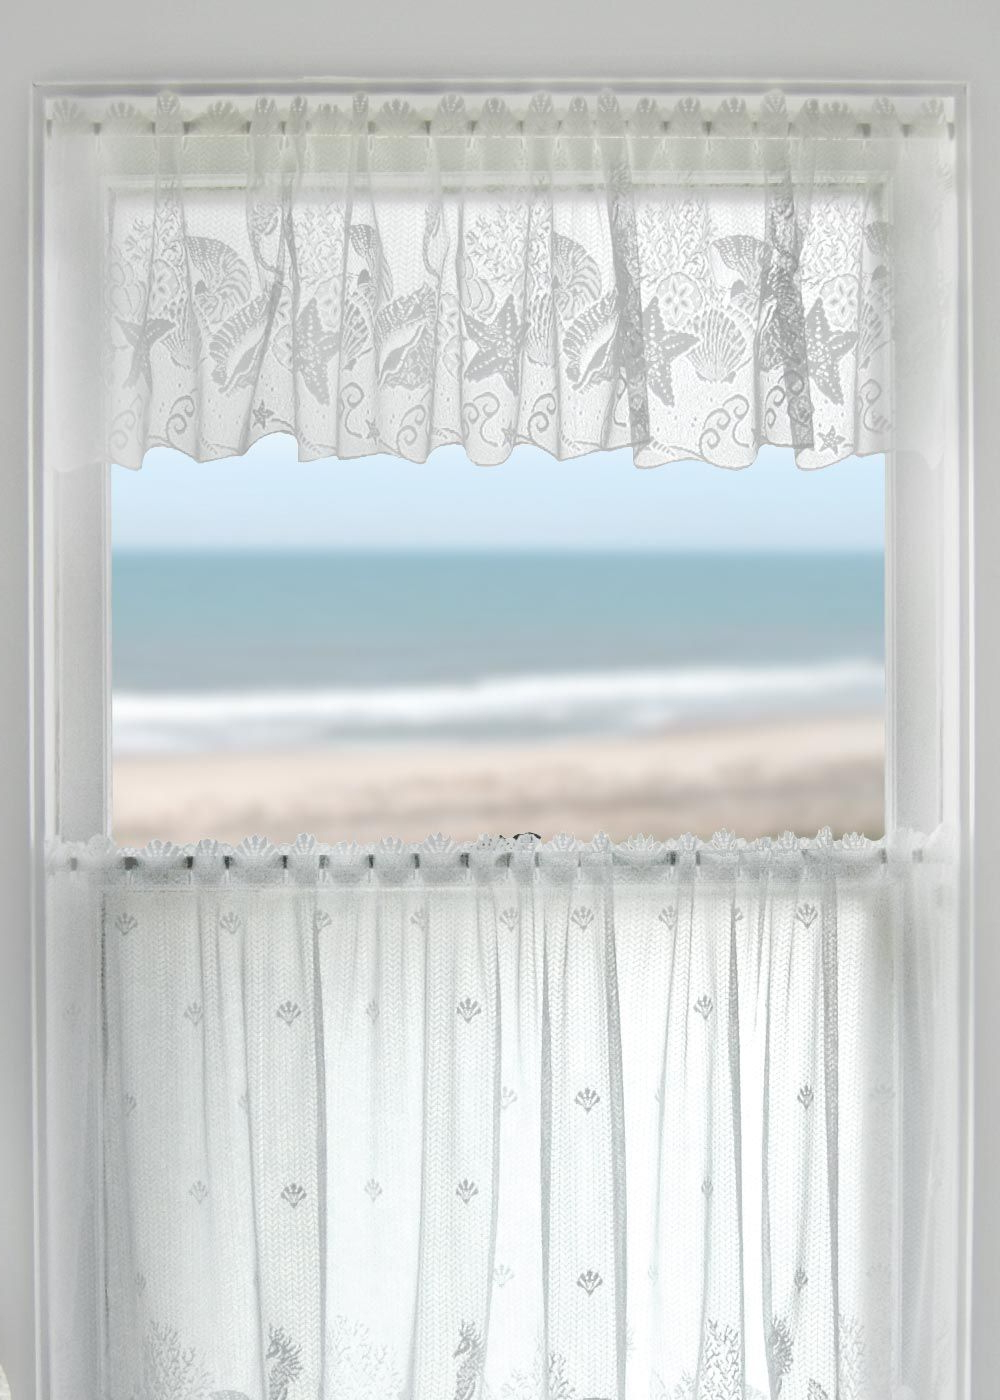 Famous Marine Life Motif Knitted Lace Window Curtain Pieces Intended For Coastal Seascape Lace Valanceheritage Lace. #coastal (Gallery 13 of 20)